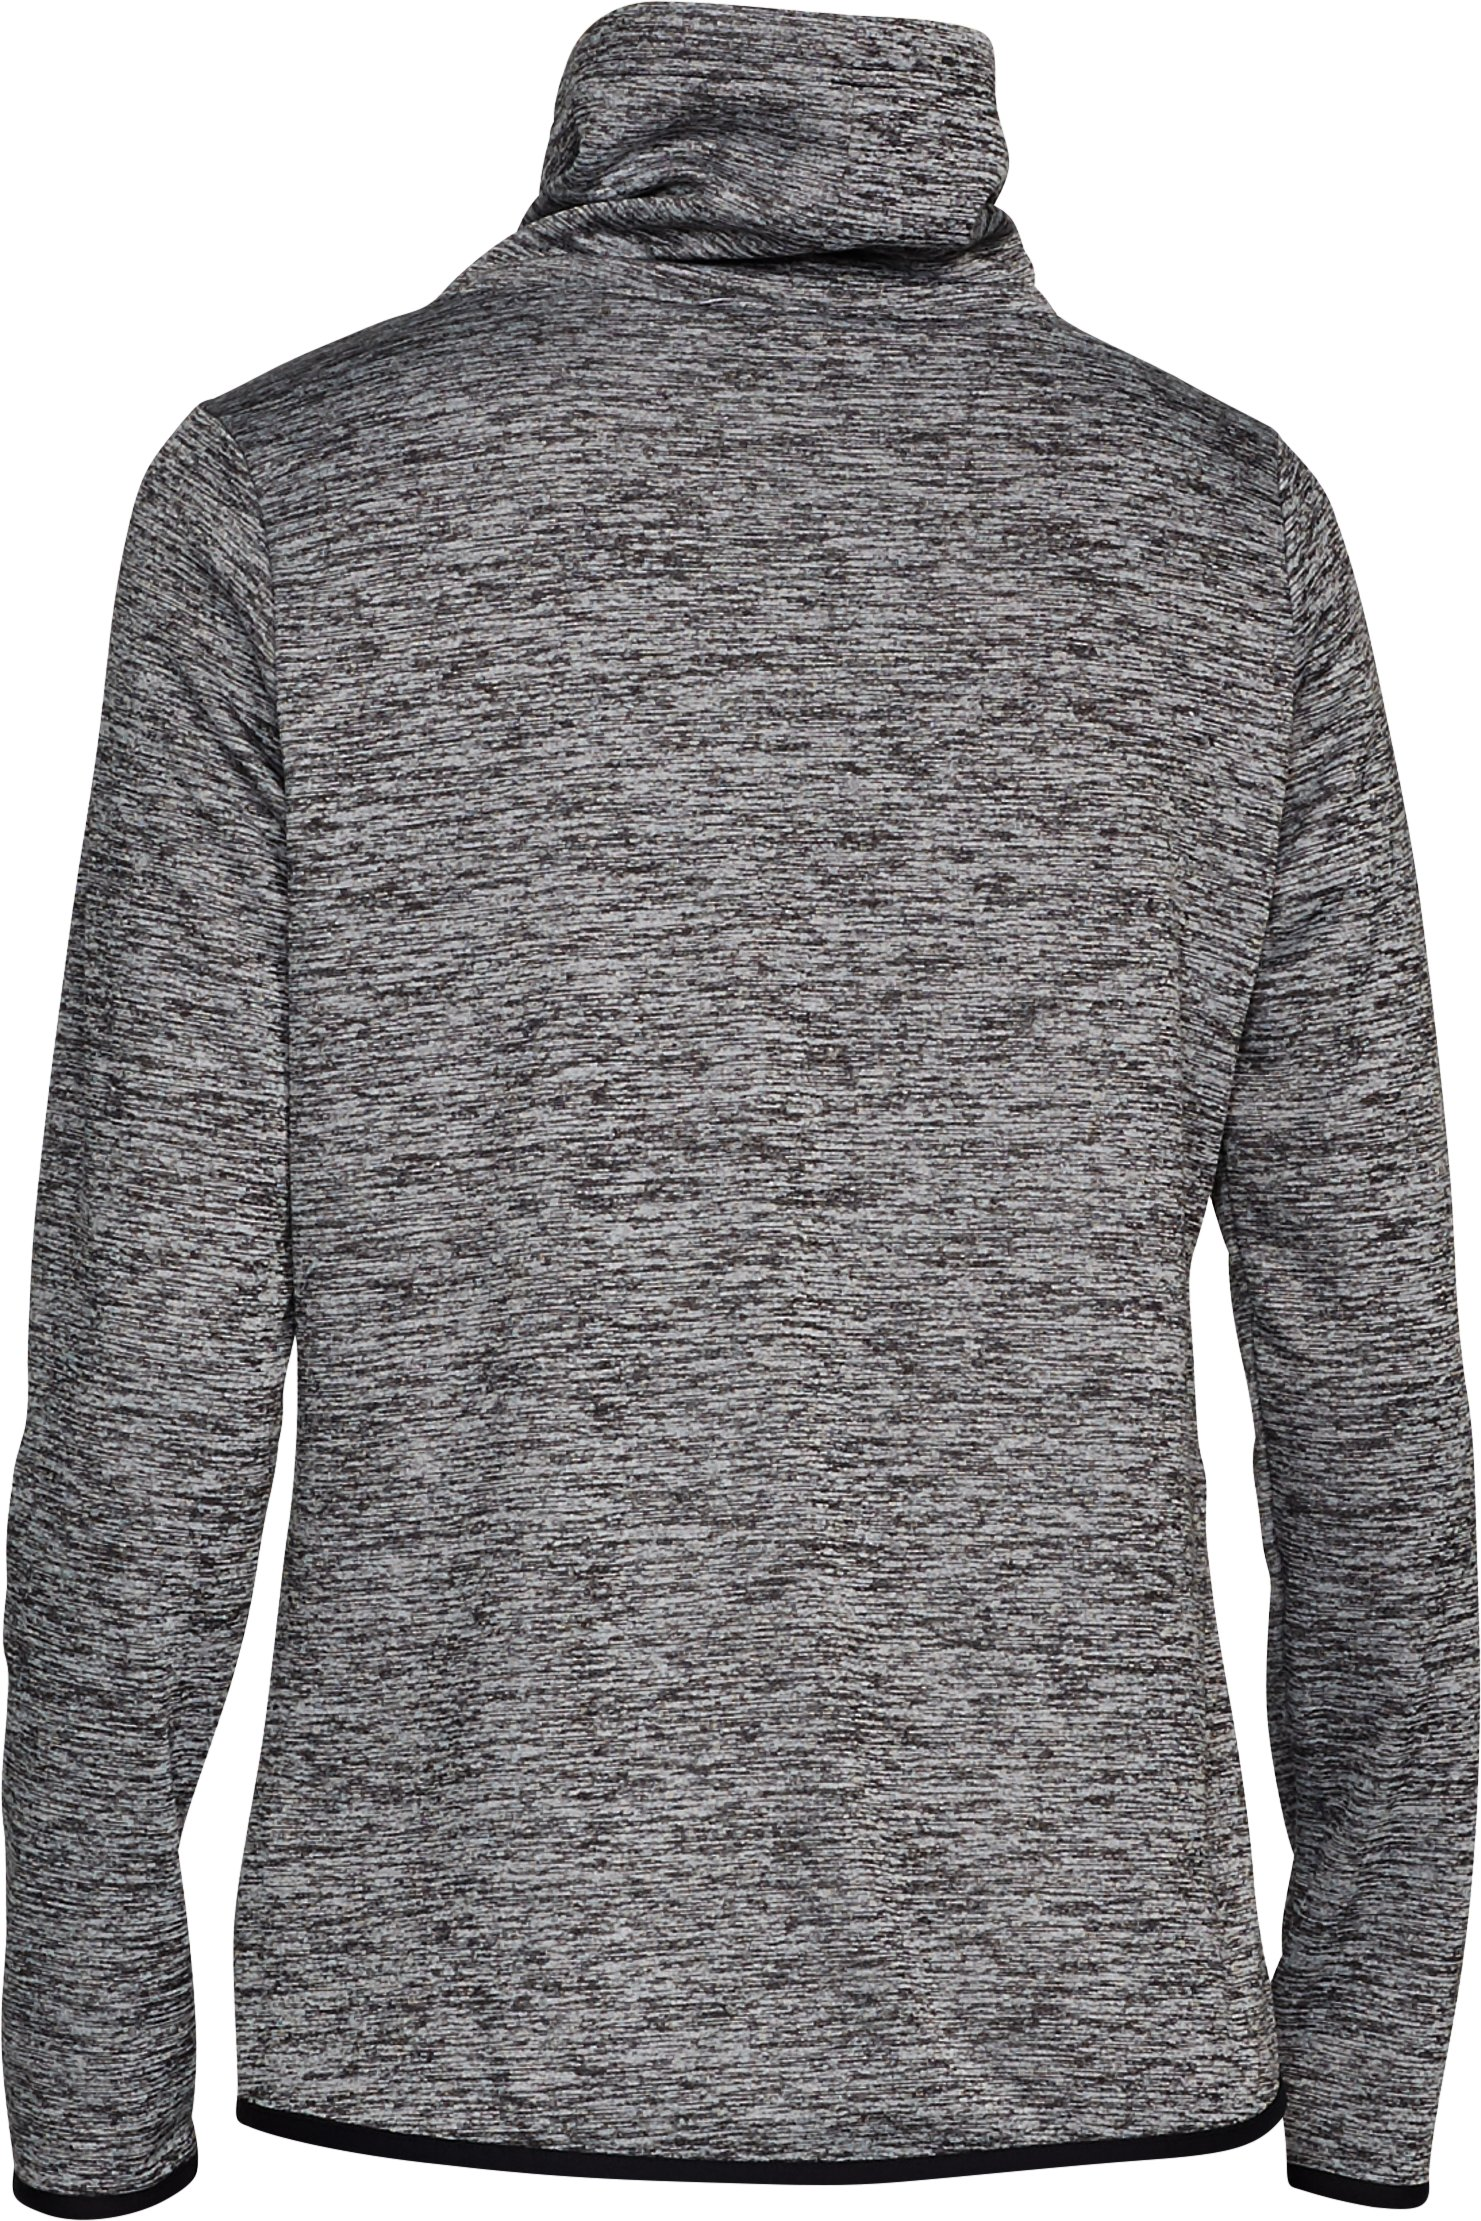 Women's  Armour Fleece® Graphic Twist Pullover, Black , undefined